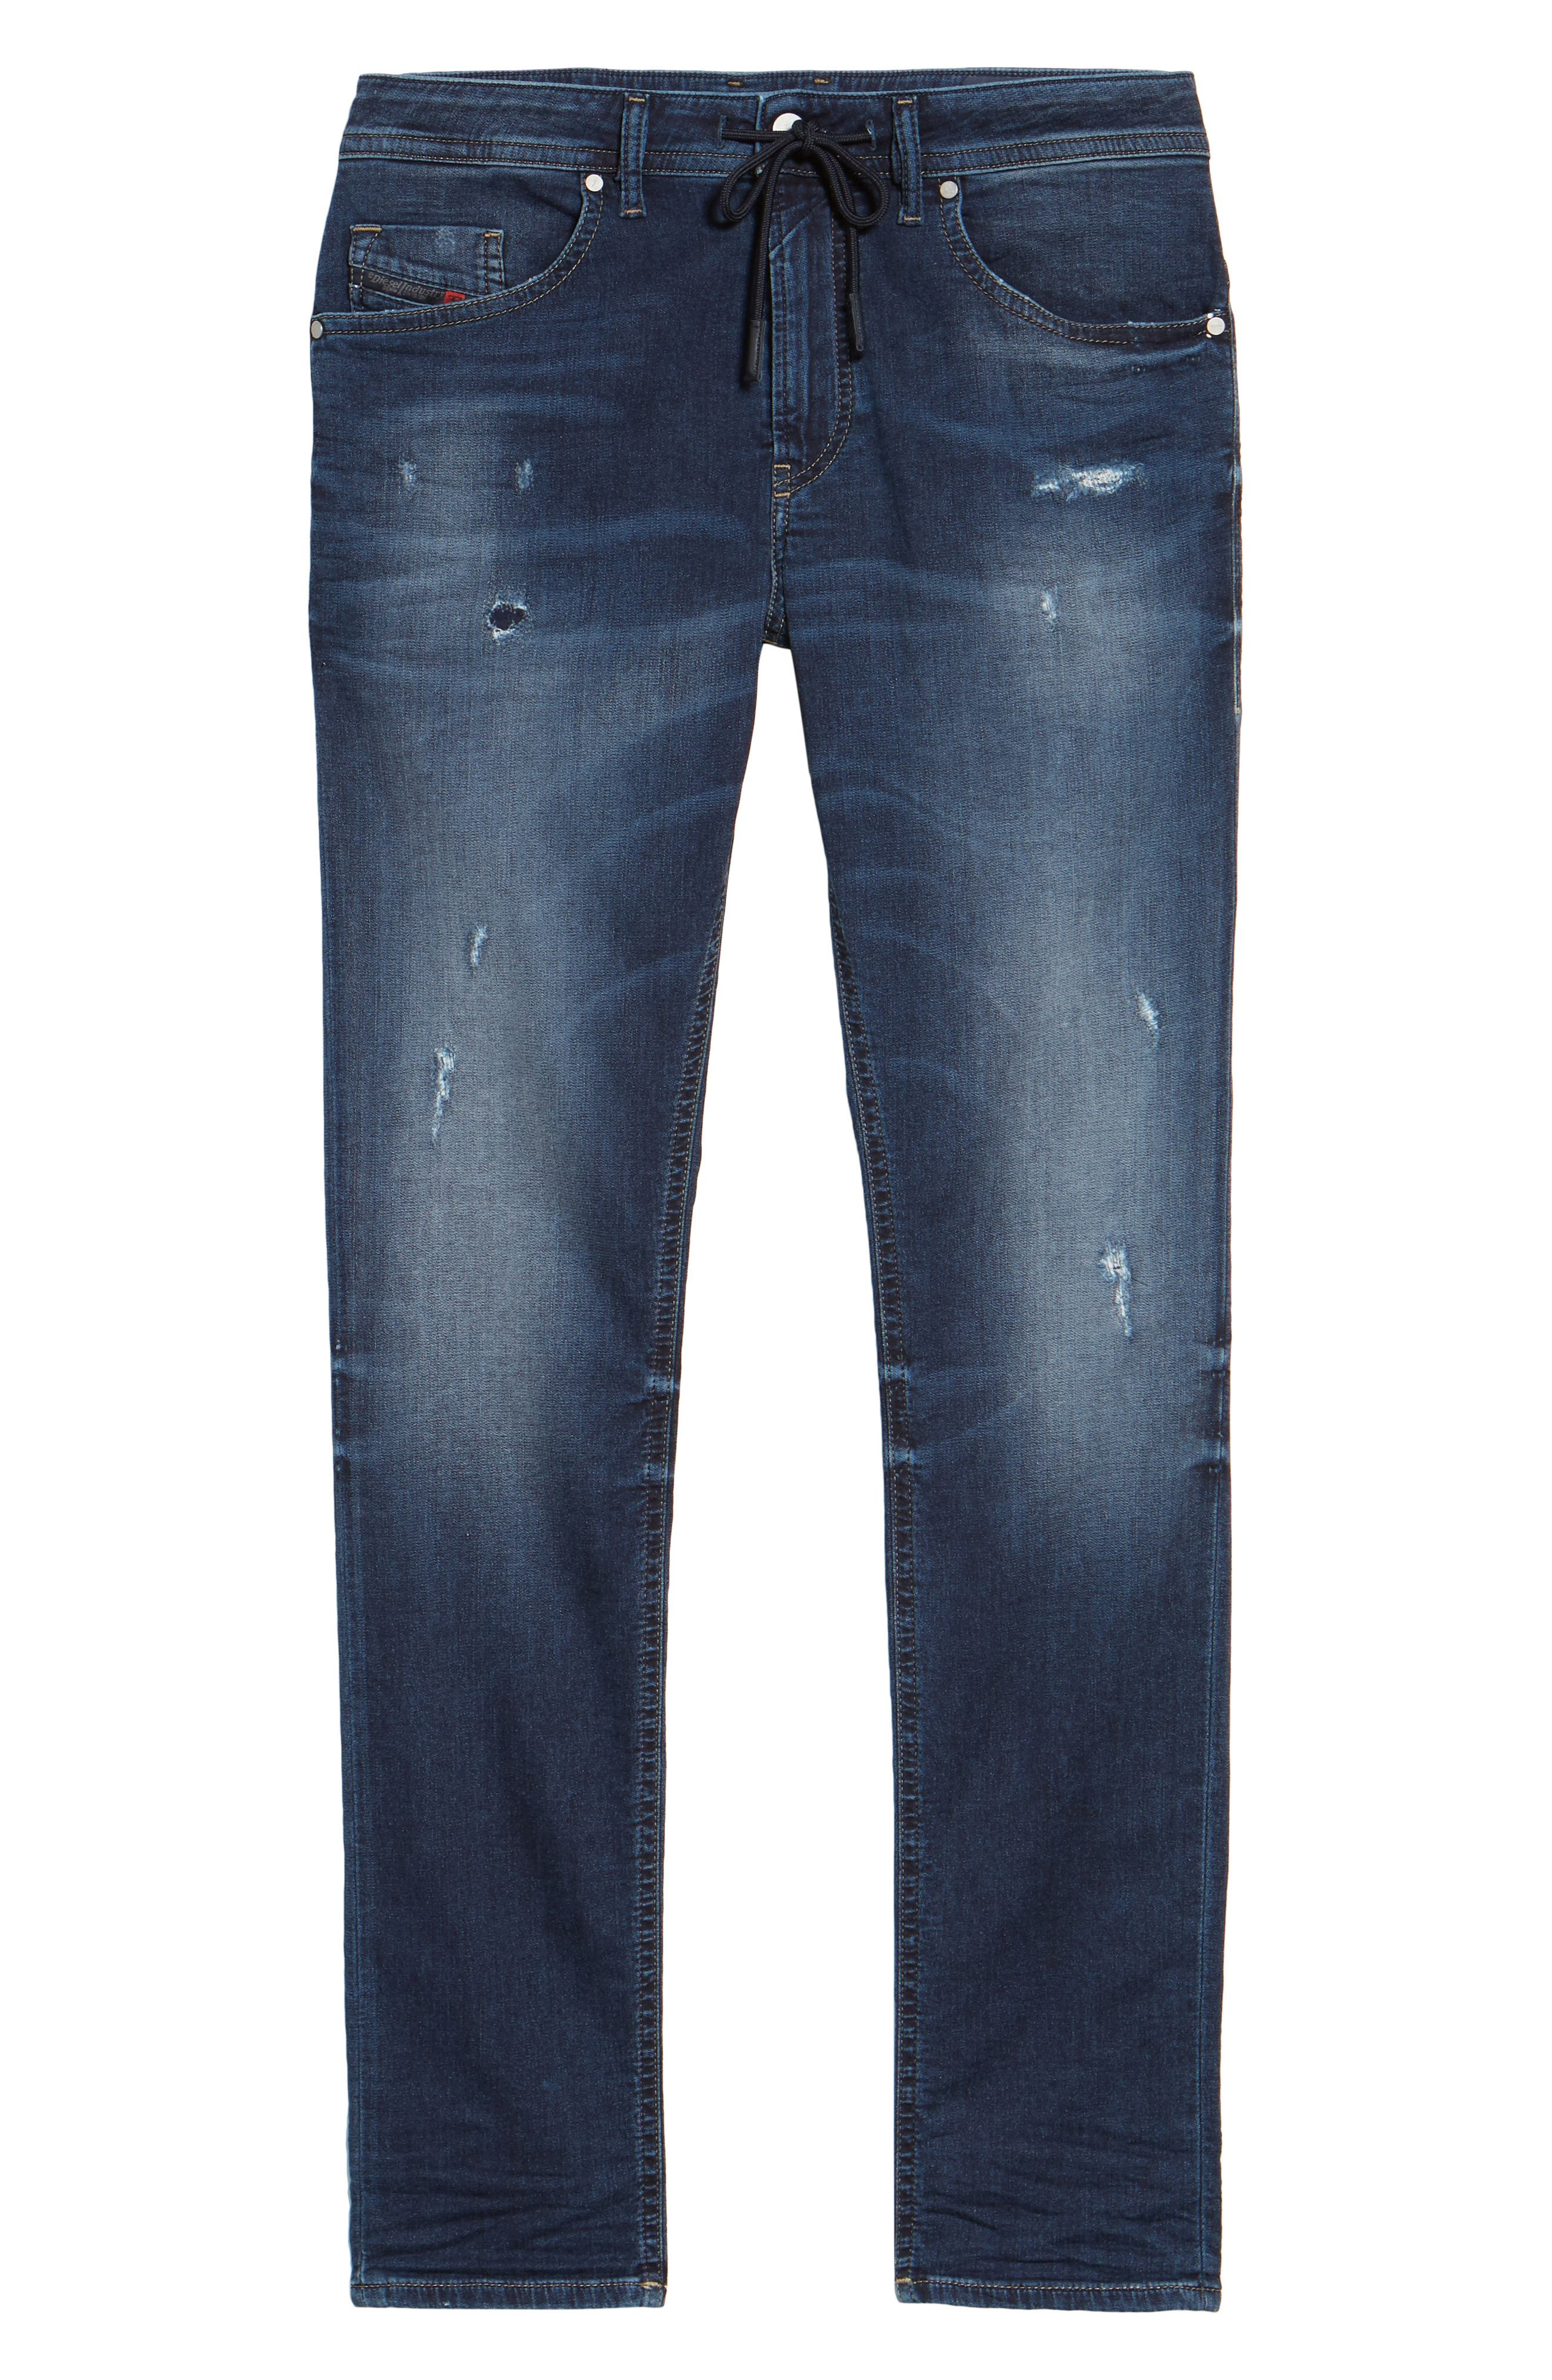 Thommer Slim Fit Jeans,                             Alternate thumbnail 6, color,                             0686W